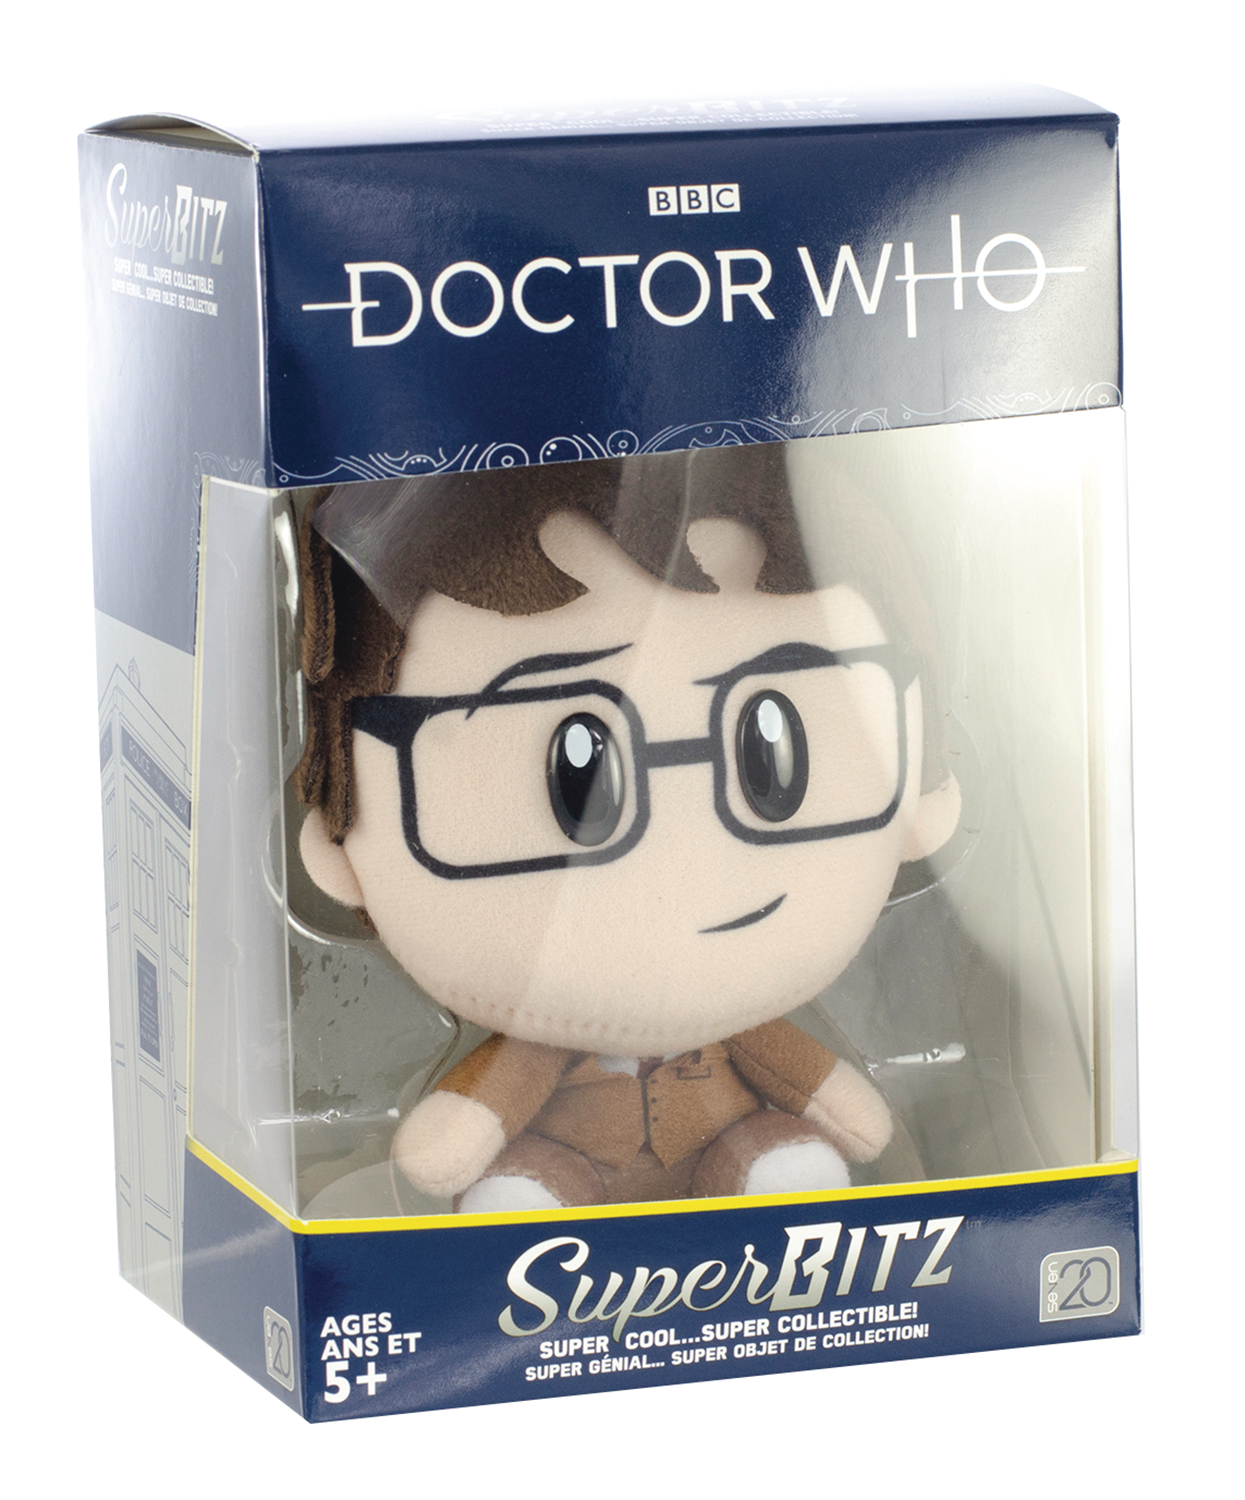 DOCTOR WHO 10TH DOCTOR SUPERBITZ PLUSH